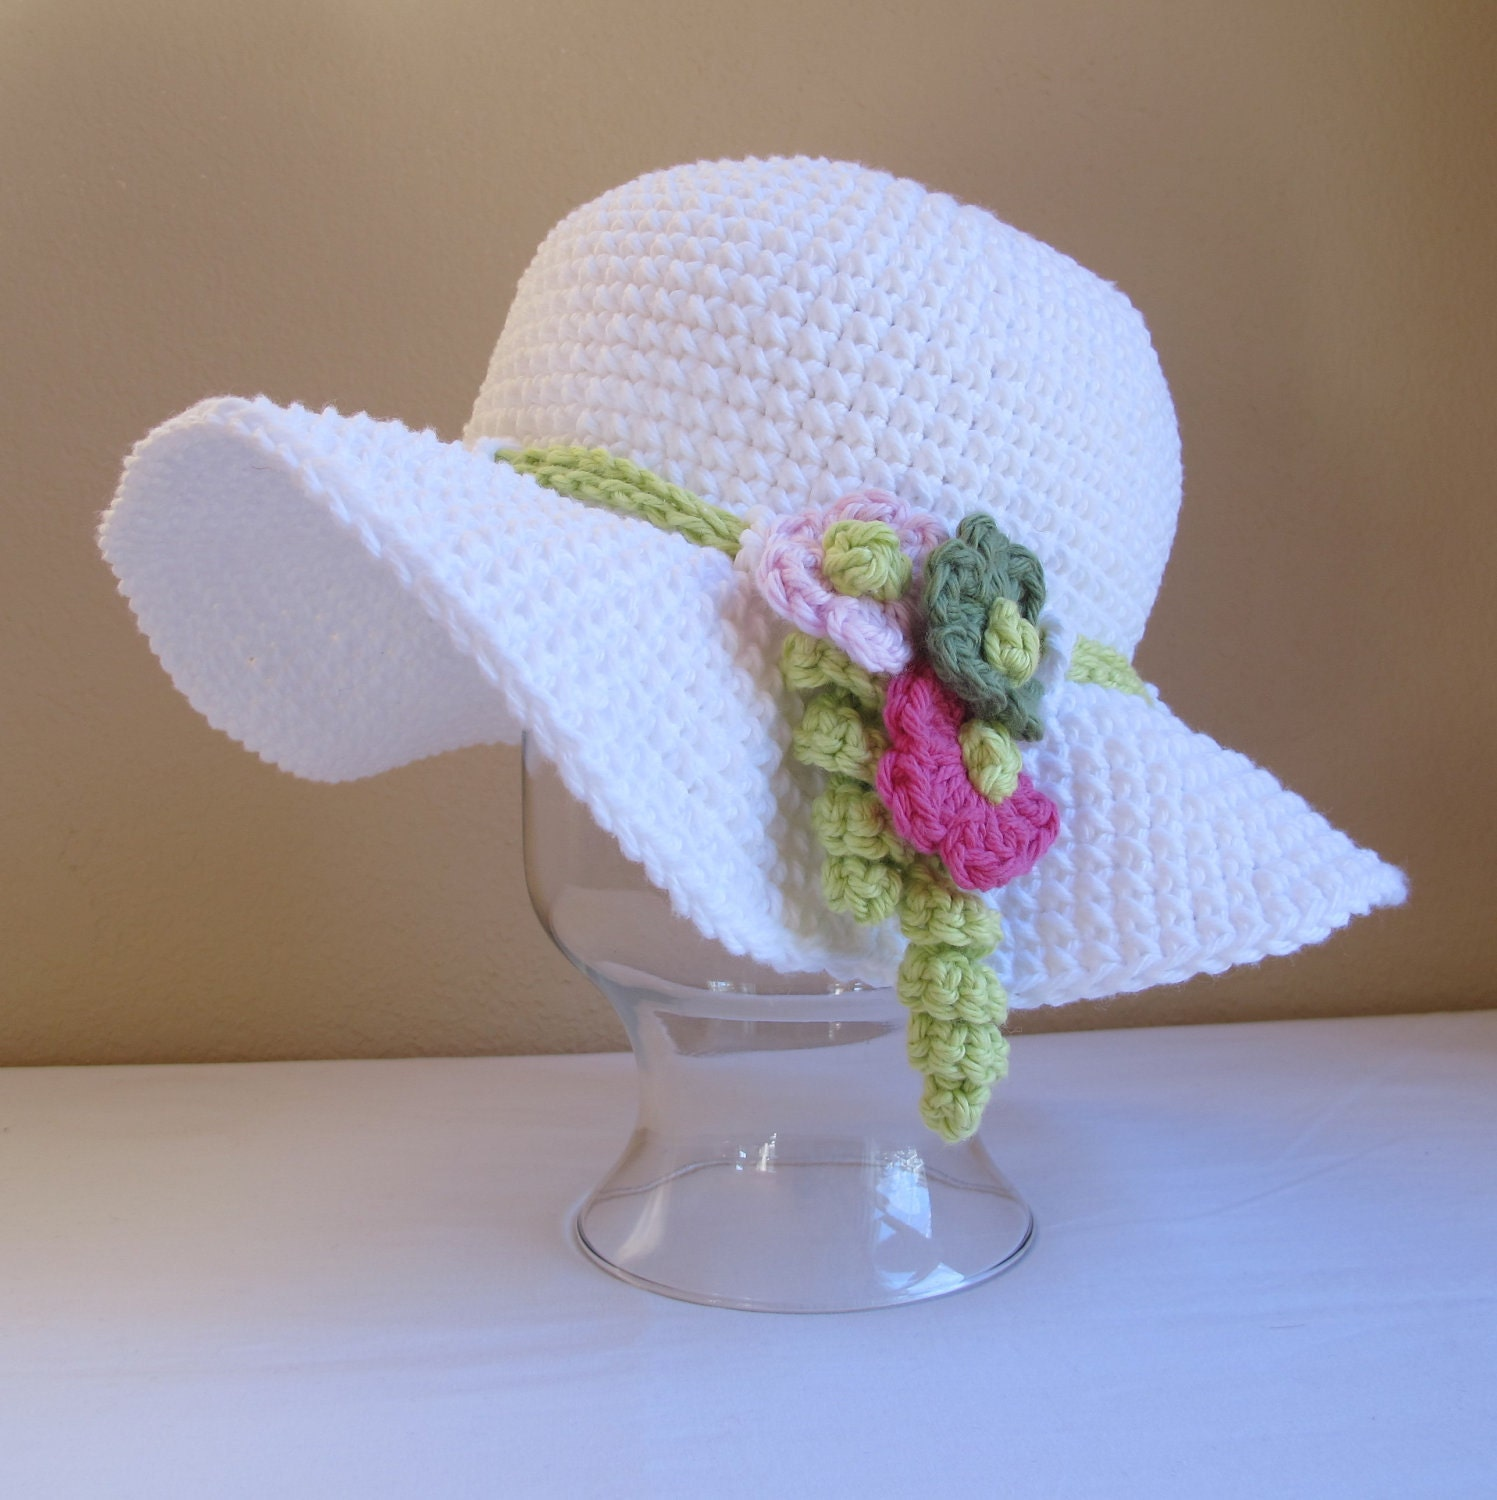 CROCHET PATTERN - Spring Garden - a spring/summer hat with flowers in 6 sizes (Infant - Adult S)